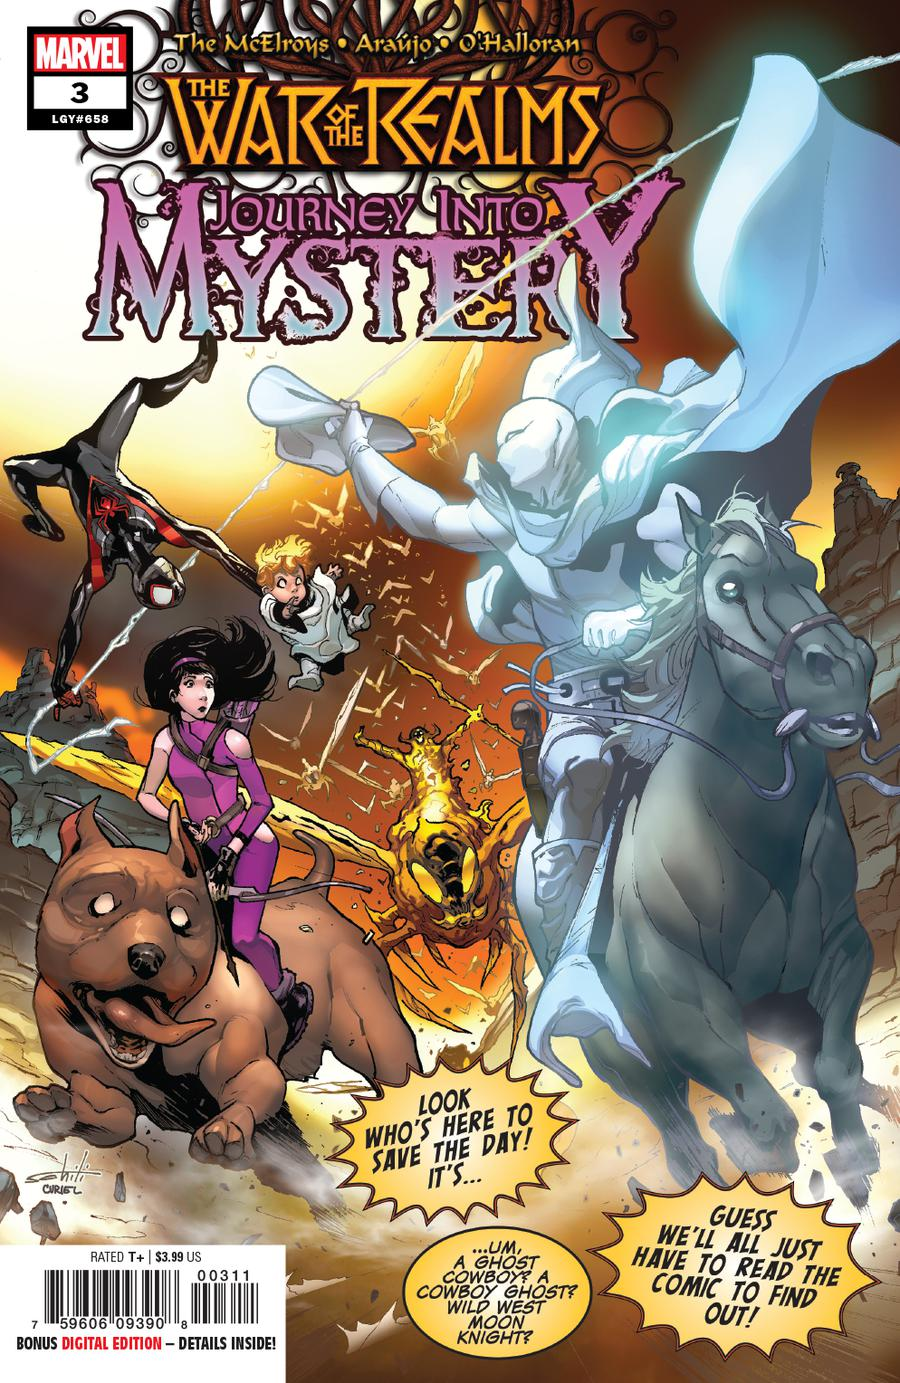 War Of The Realms Journey Into Mystery #3 Cover A Regular Valerio Schiti & David Curiel Cover